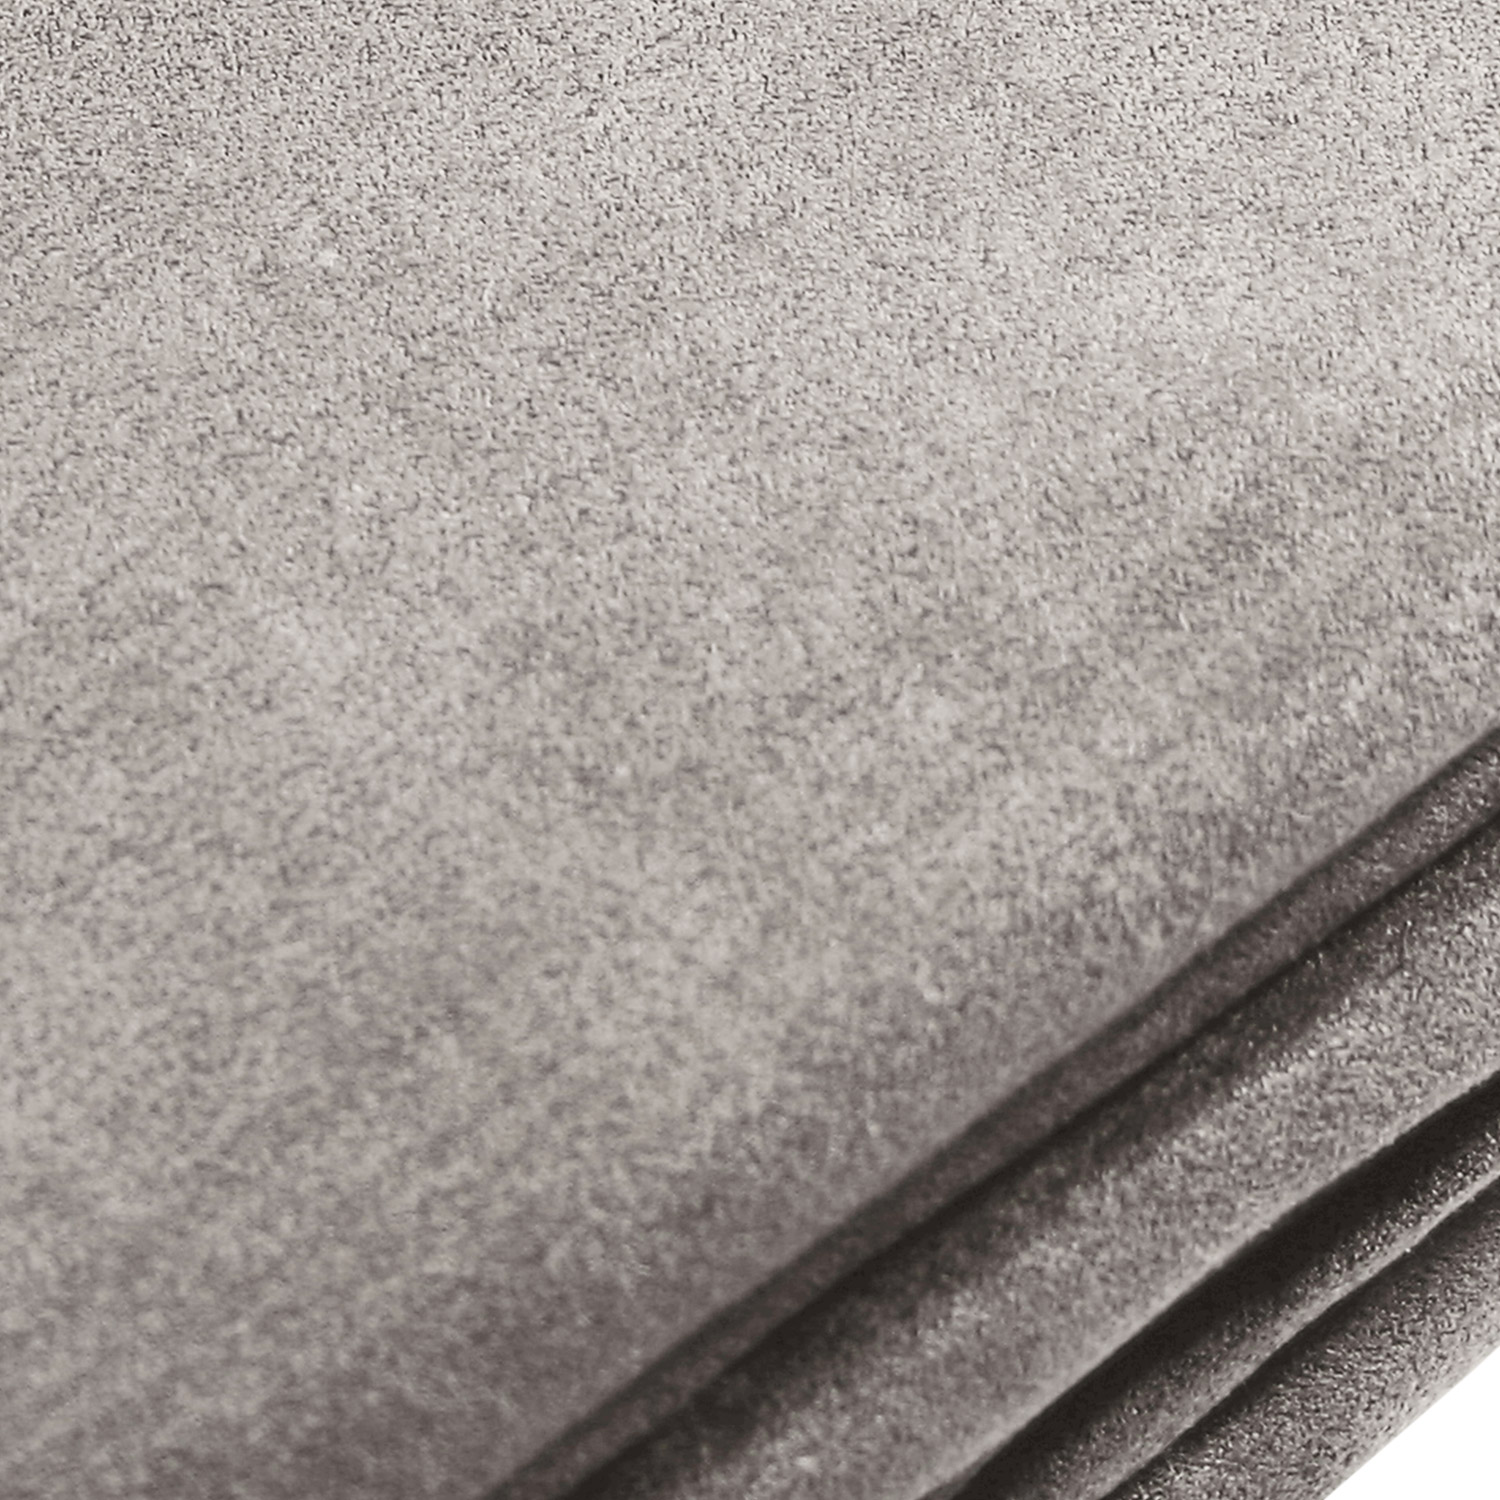 tagesdecke sofa berwurf 210x280 cm plaid bett berwurf sofa couch berwurf decke ebay. Black Bedroom Furniture Sets. Home Design Ideas